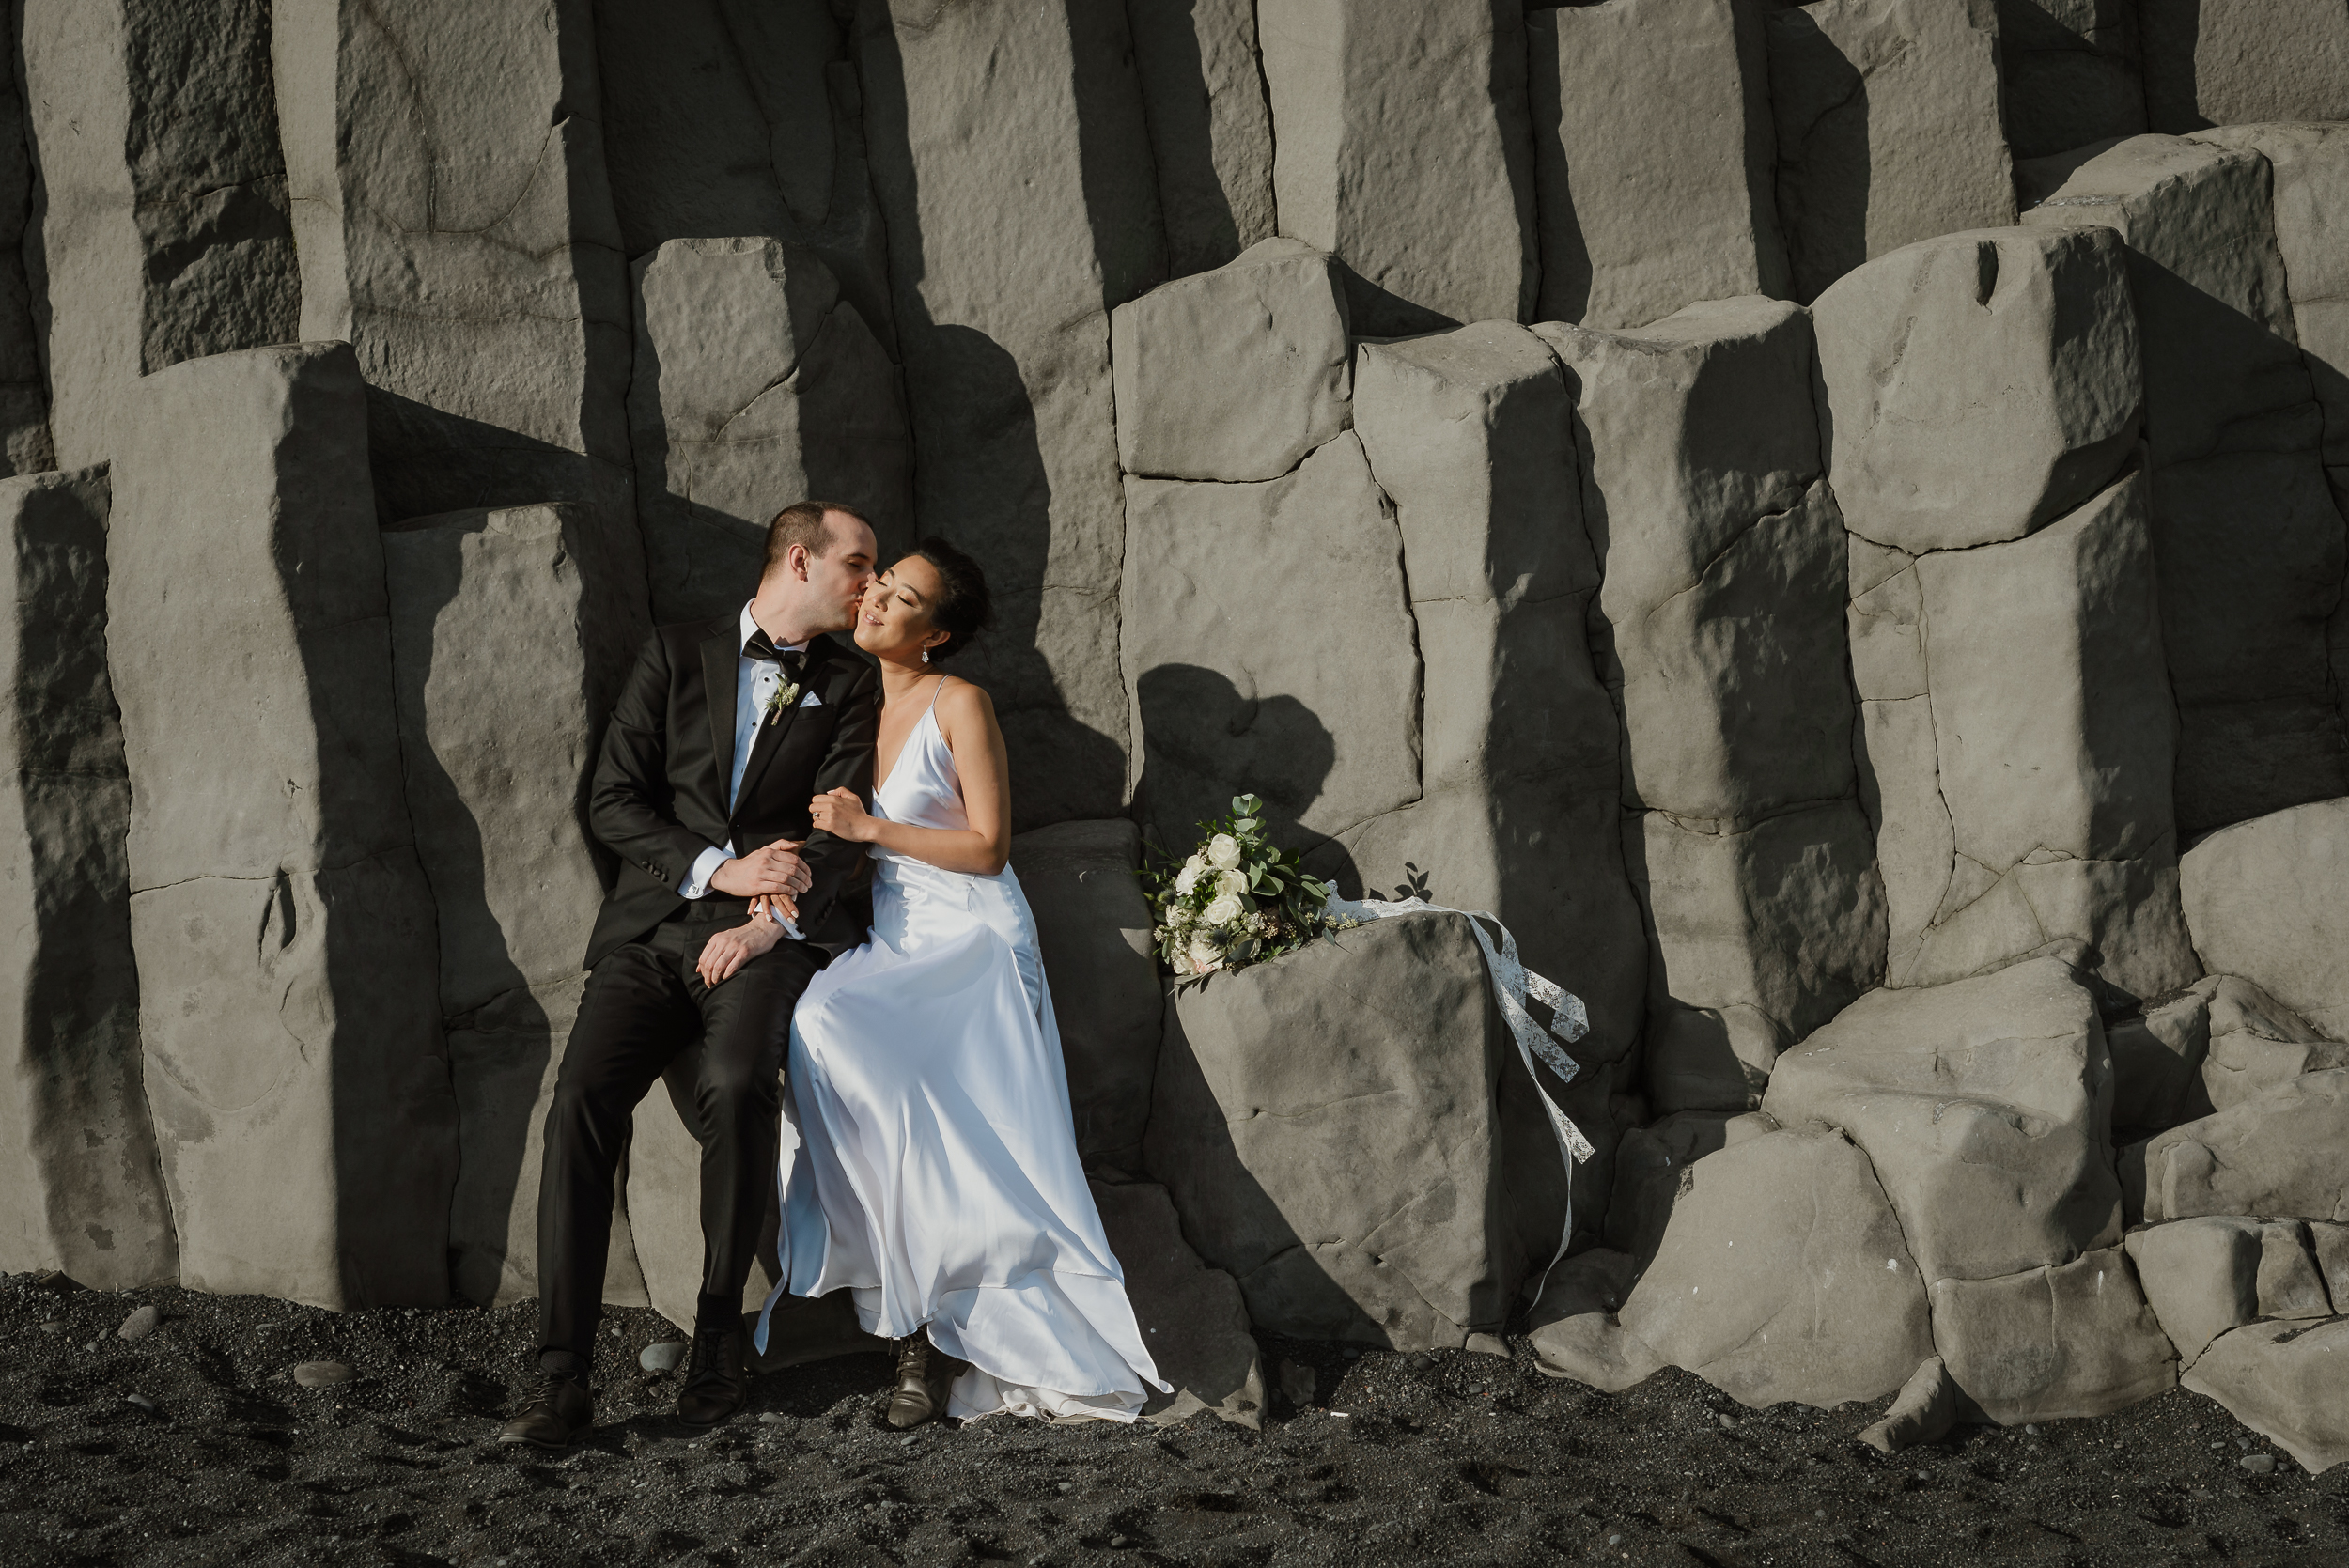 21-destination-wedding-iceland-engagement-session-vivianchen-173.jpg